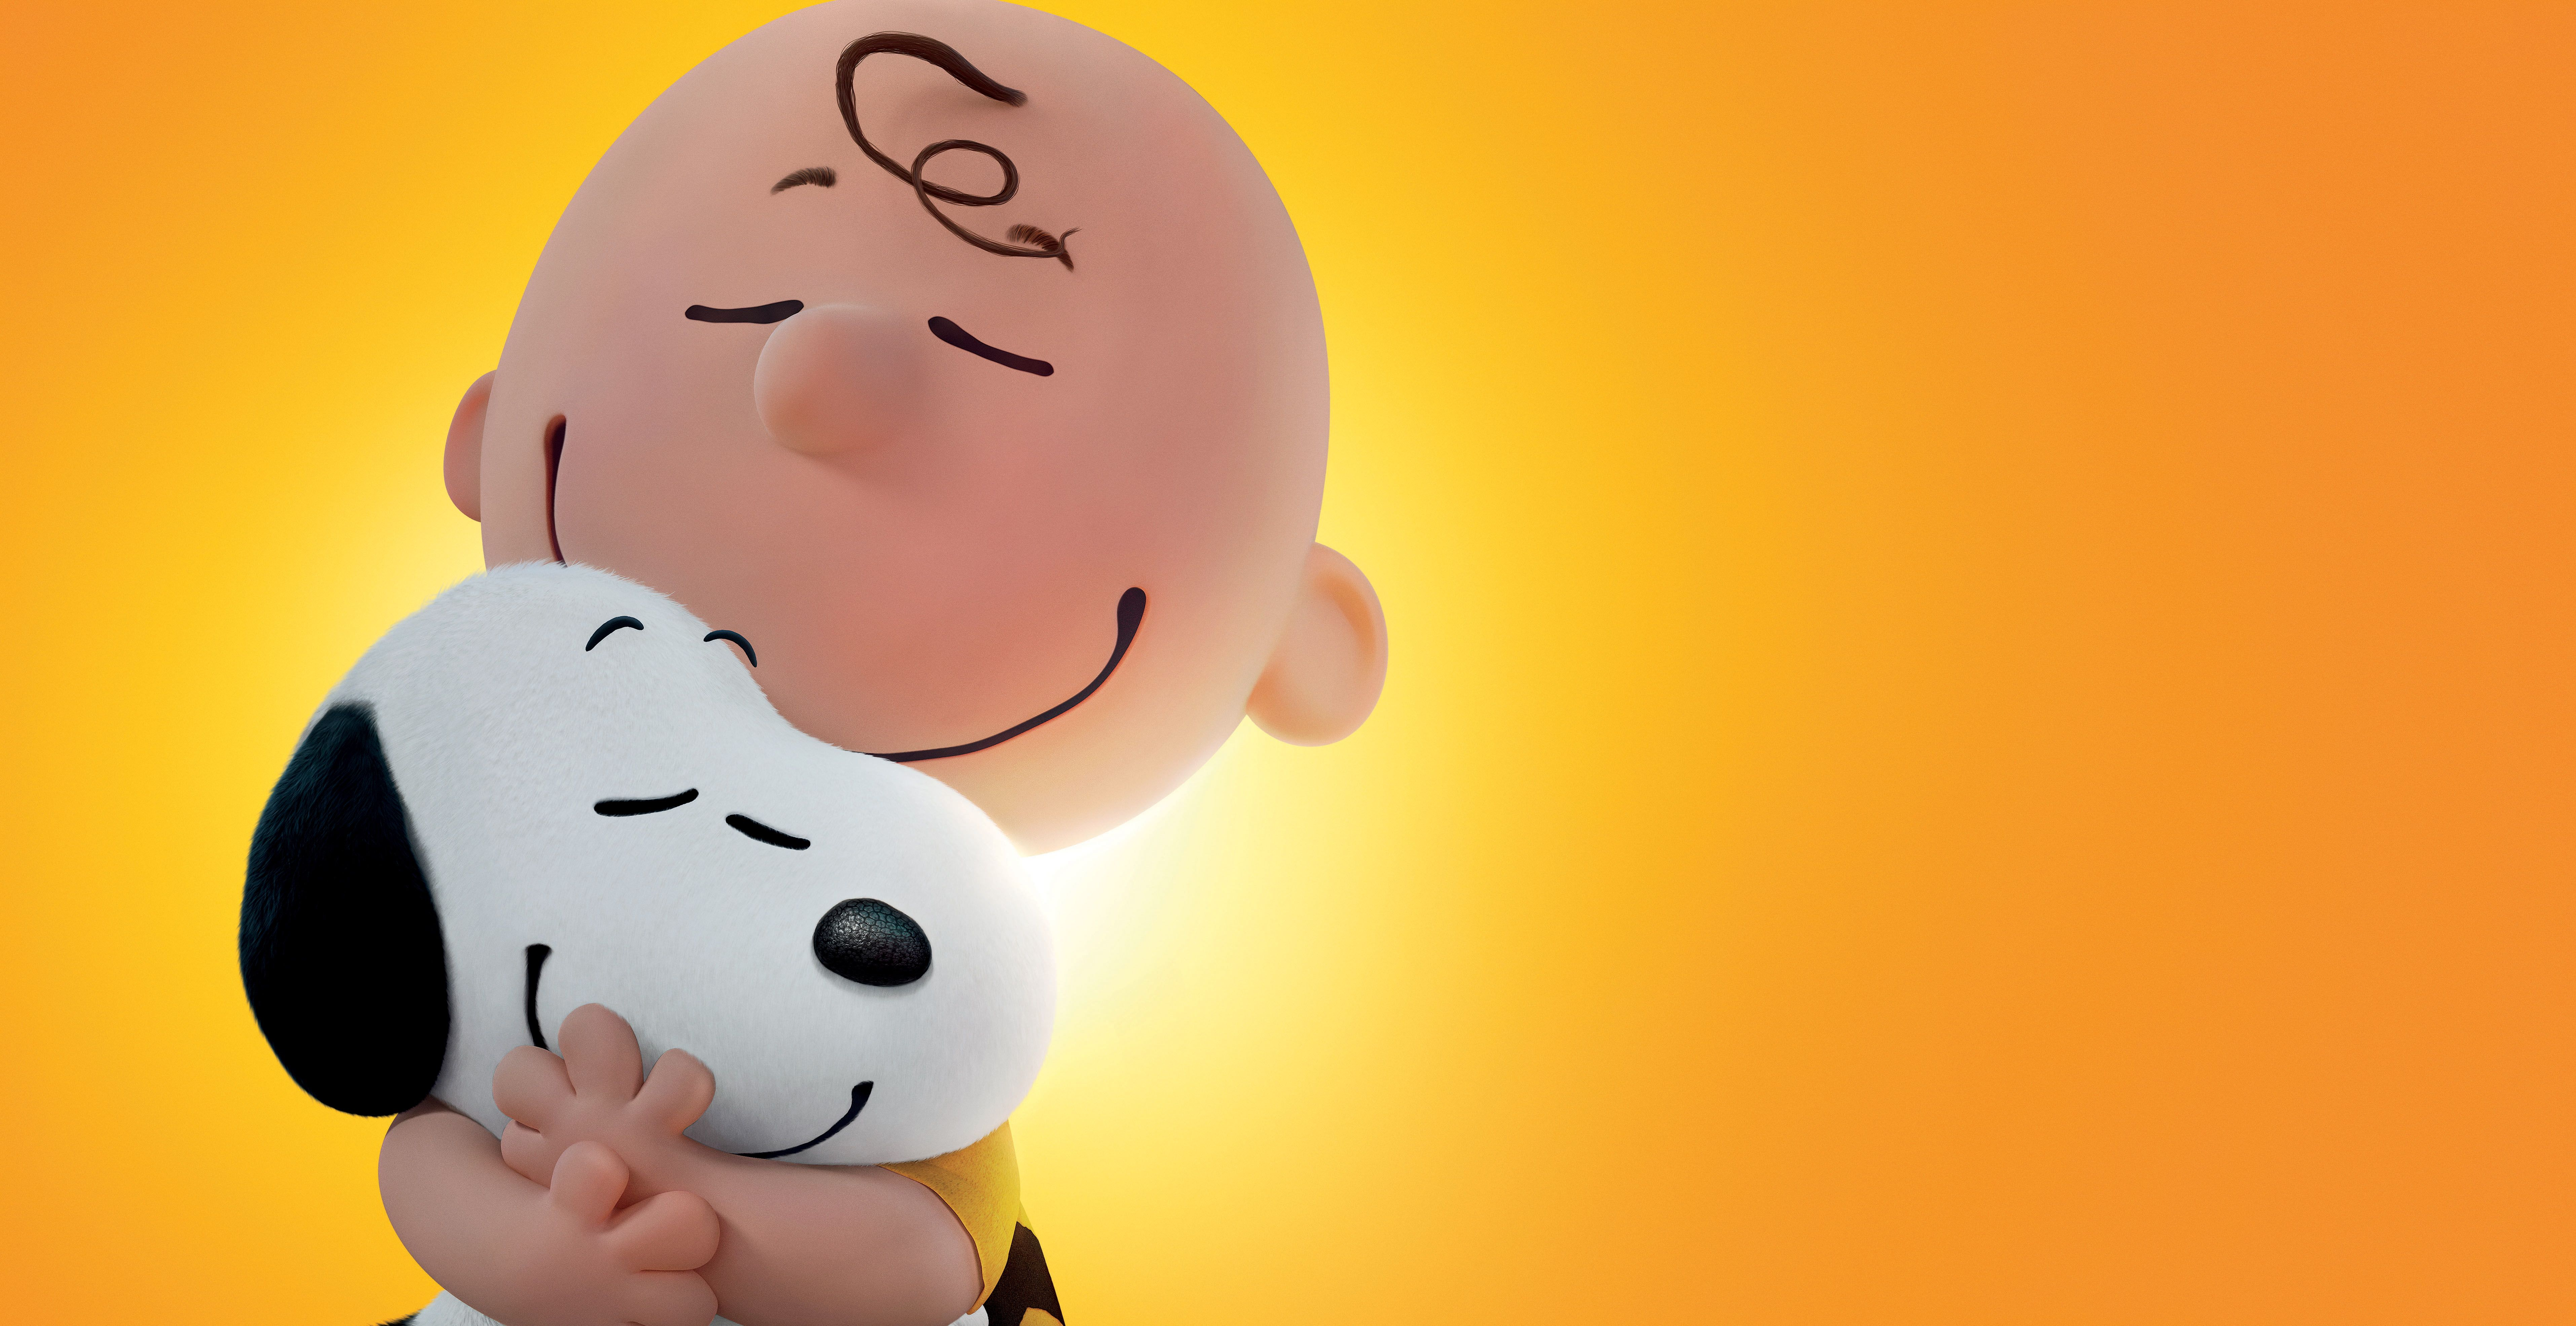 Snoopy And Charlie Brown Charlie Brown Snoopy The Peanuts Movie Animation 5k Wallpaper Hdwallpaper Snoopy Wallpaper Charlie Brown Wallpaper Wallpaper Pc